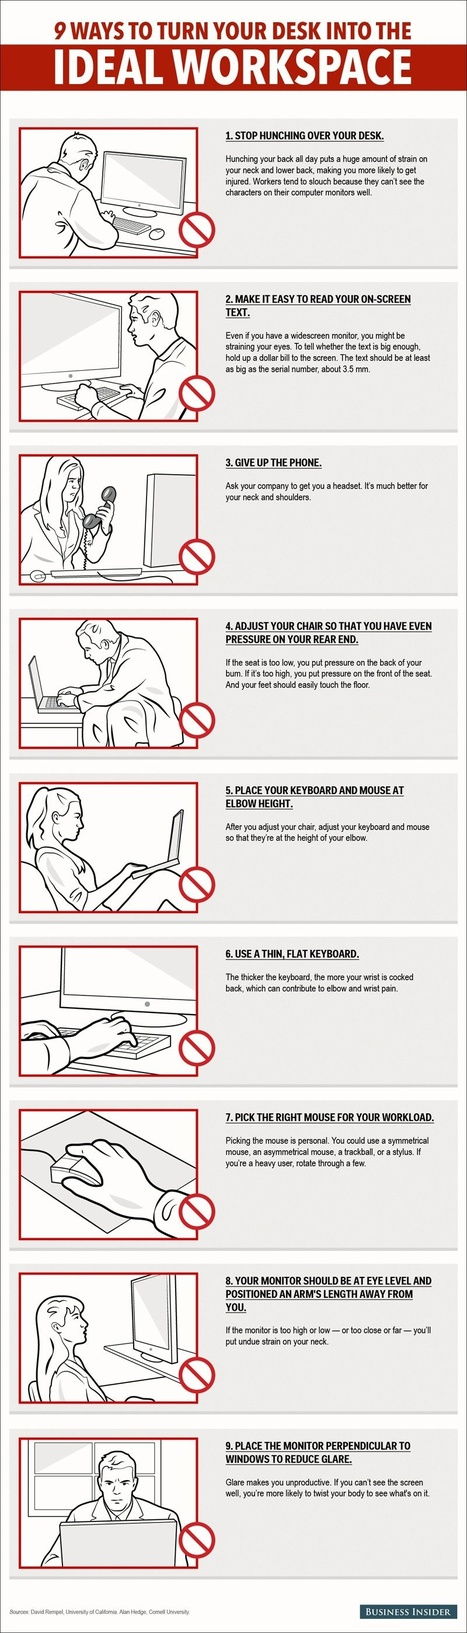 9 Ways to Turn Your Desk Into the Ideal Workspace (Infographic) | Leadership and Management | Scoop.it